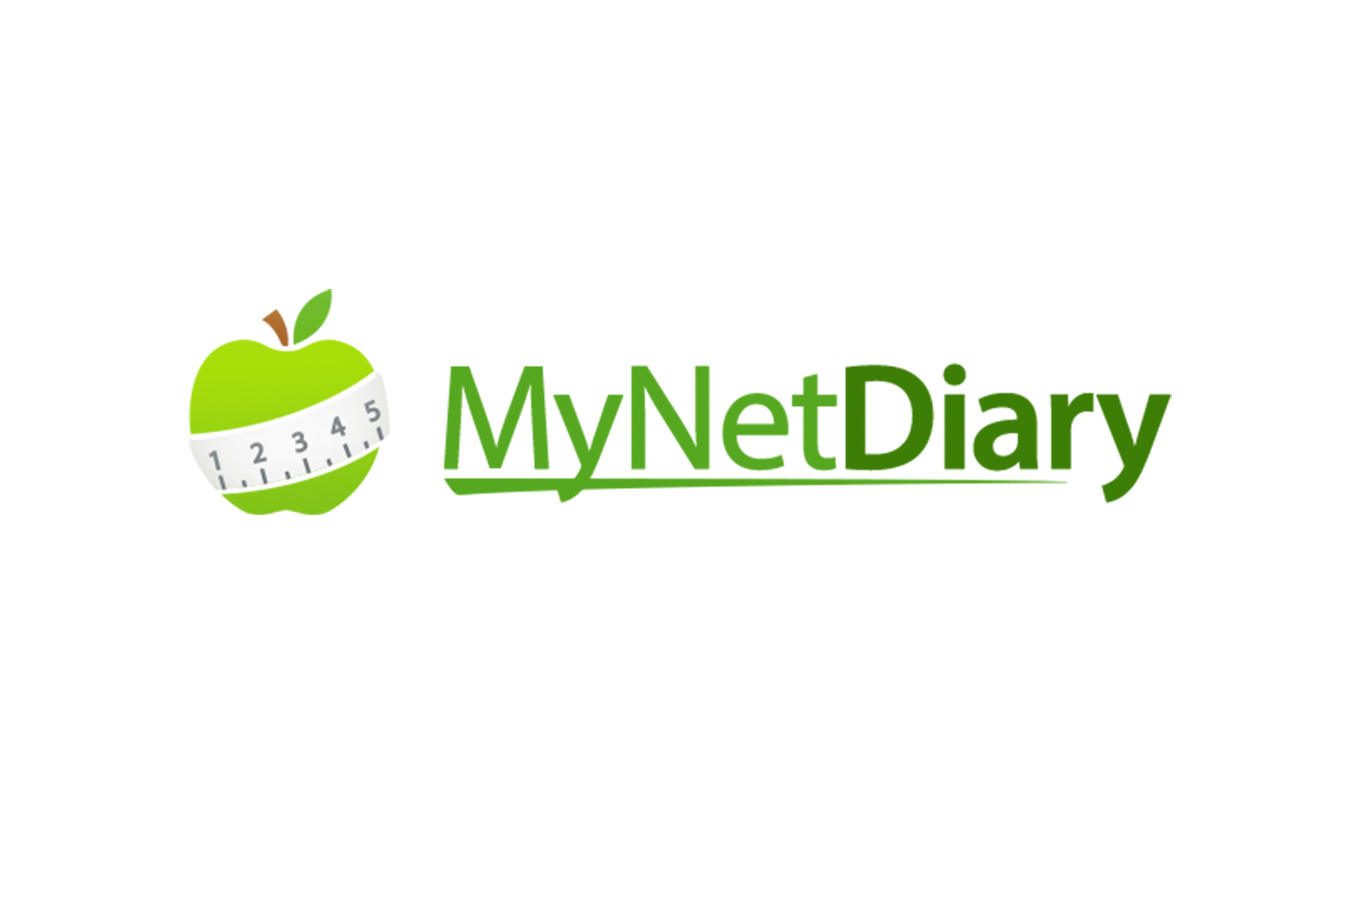 Welcome to the MyNetDiary Blog - The Inside Scoop on Food, Fitness and Functionality